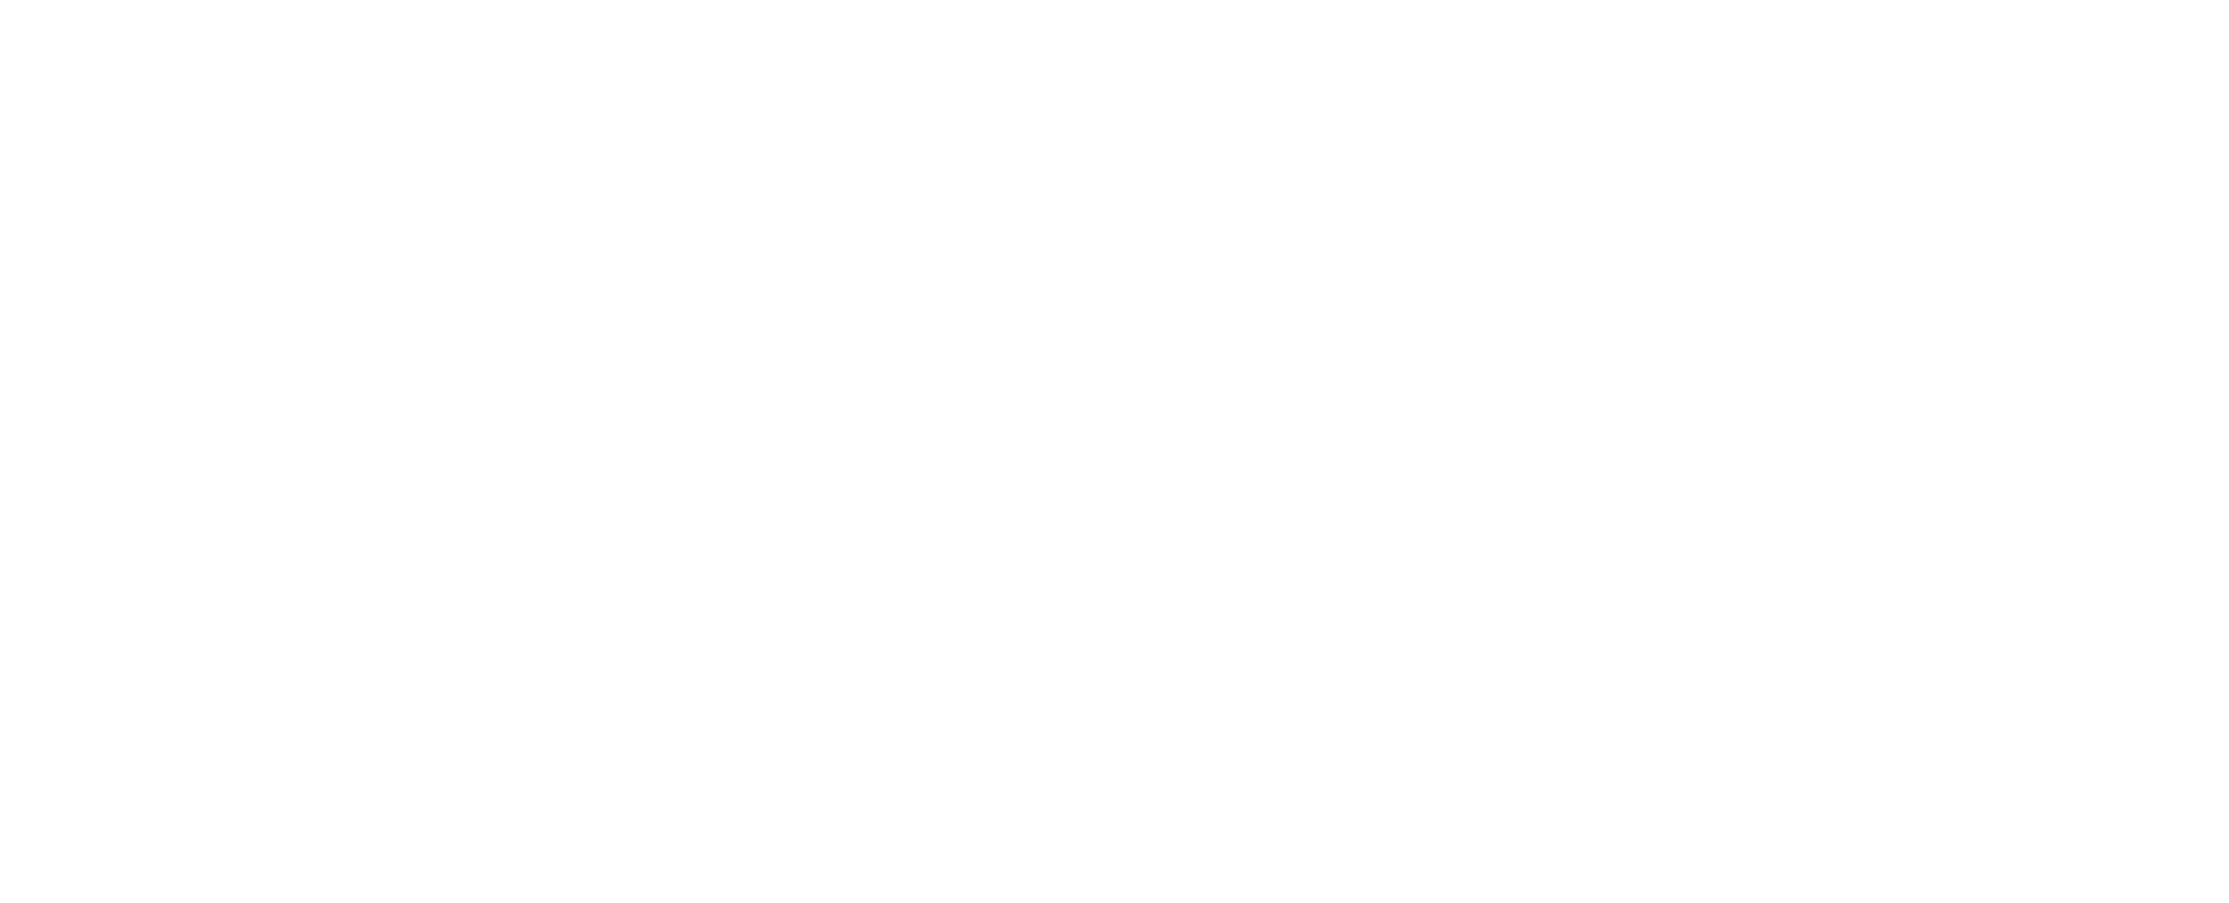 Margaritaville Lake Resort Lake Conroe - Houston Logo